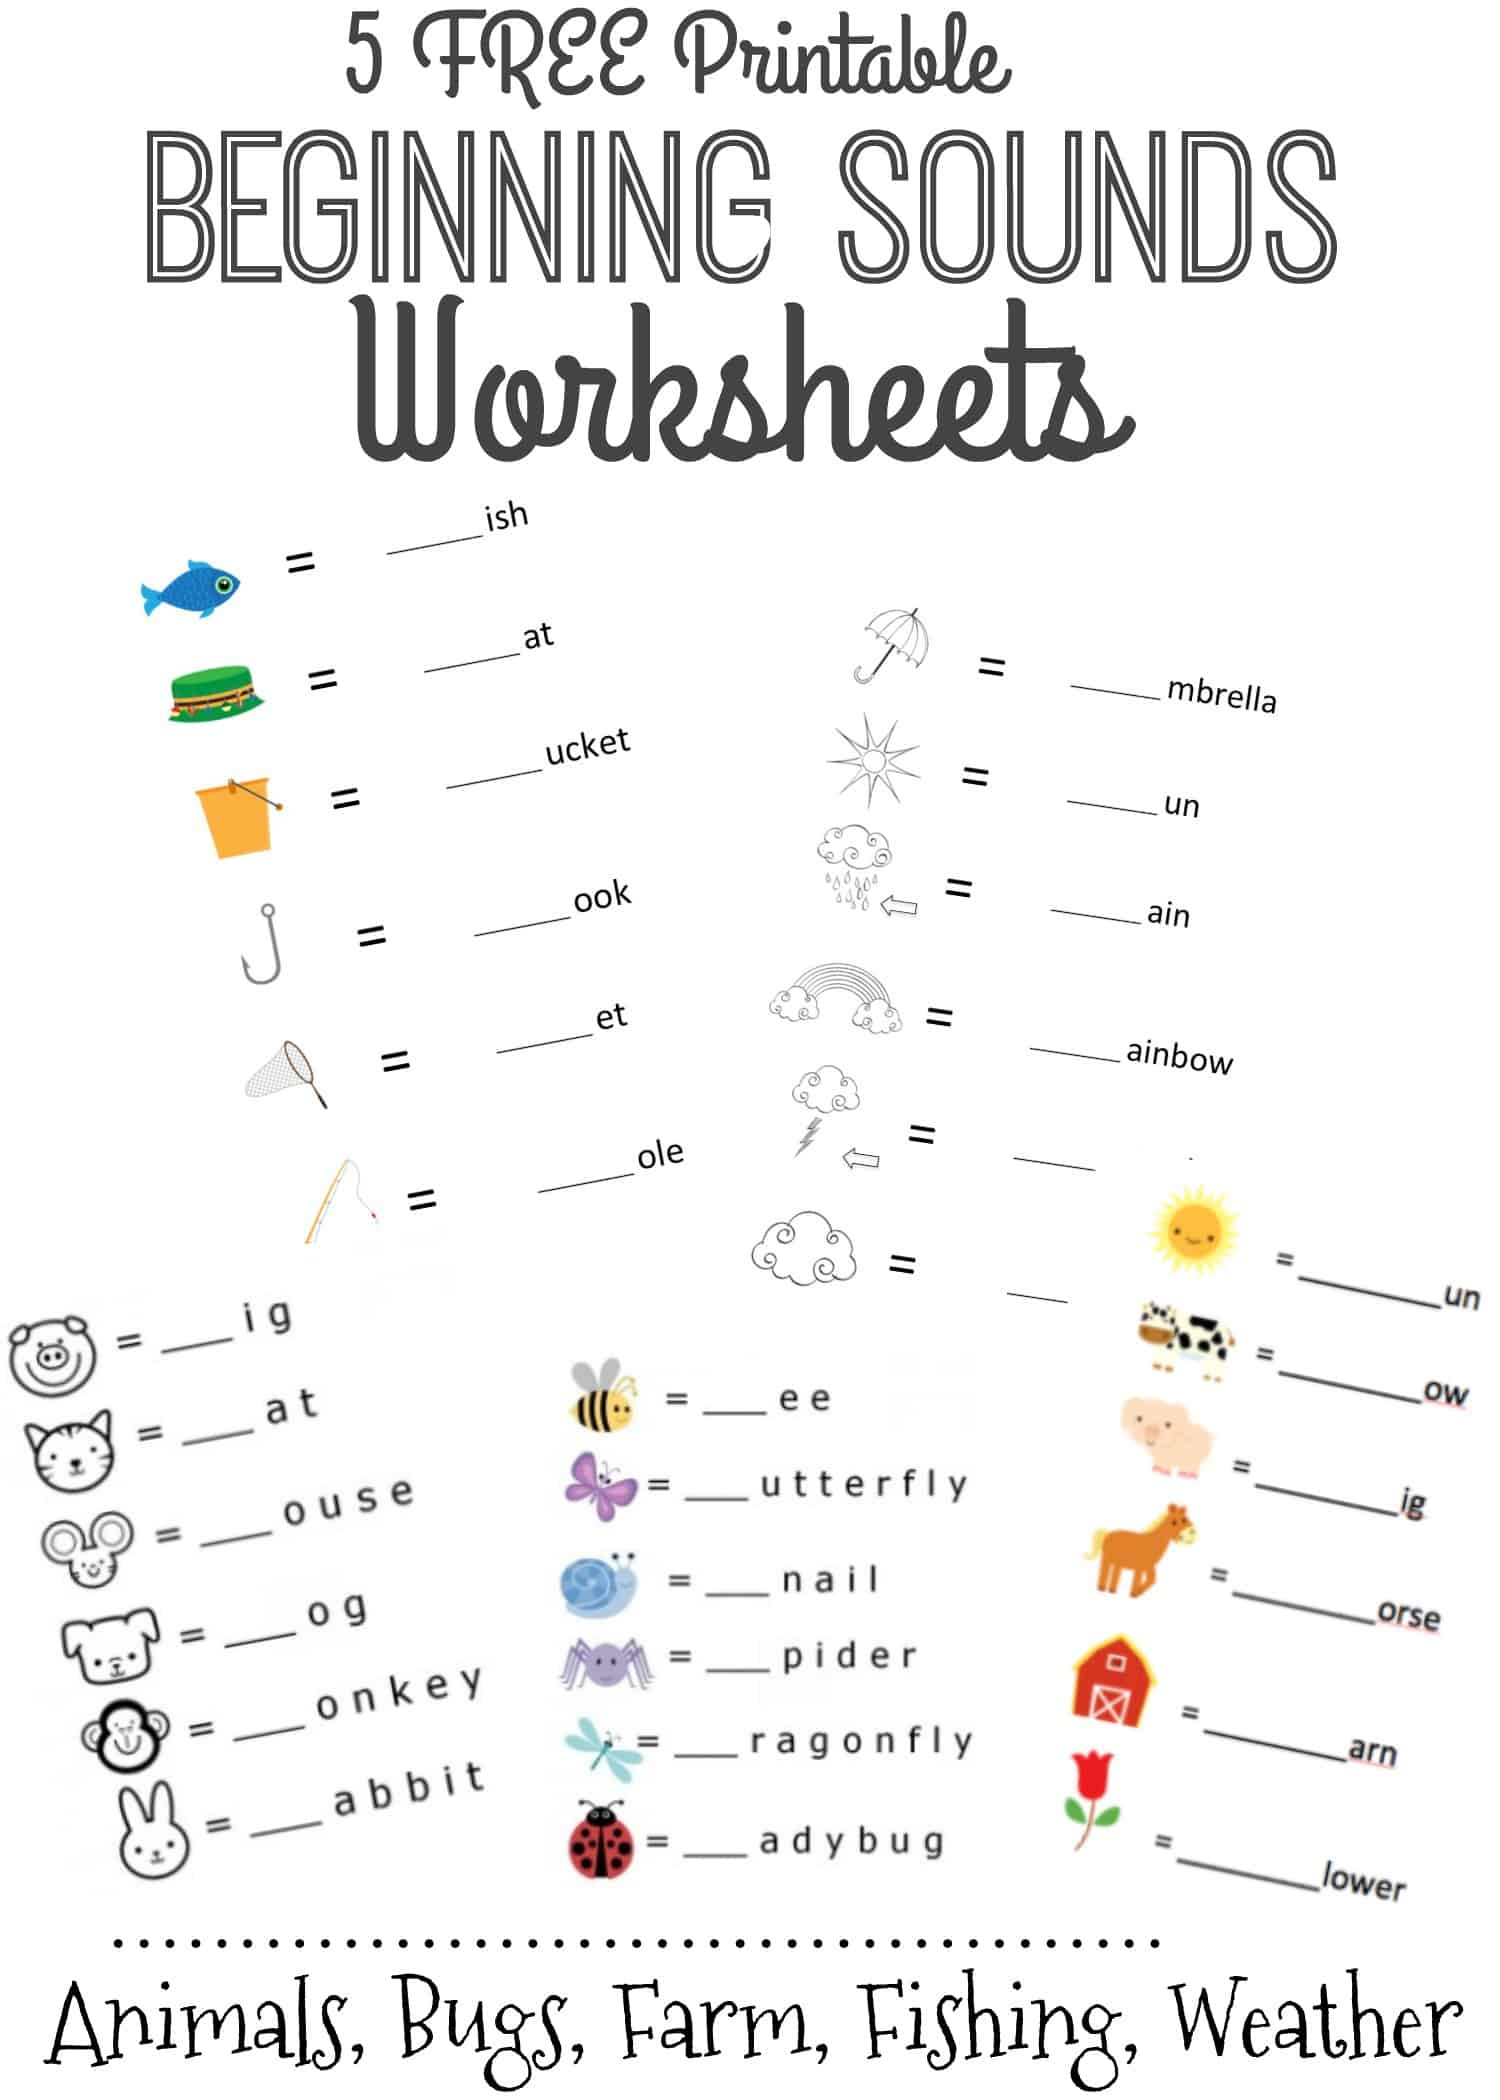 Beginning Sounds Letter Worksheets Or Early Learners Ree with regard to Pre K Tracing Letters Worksheets